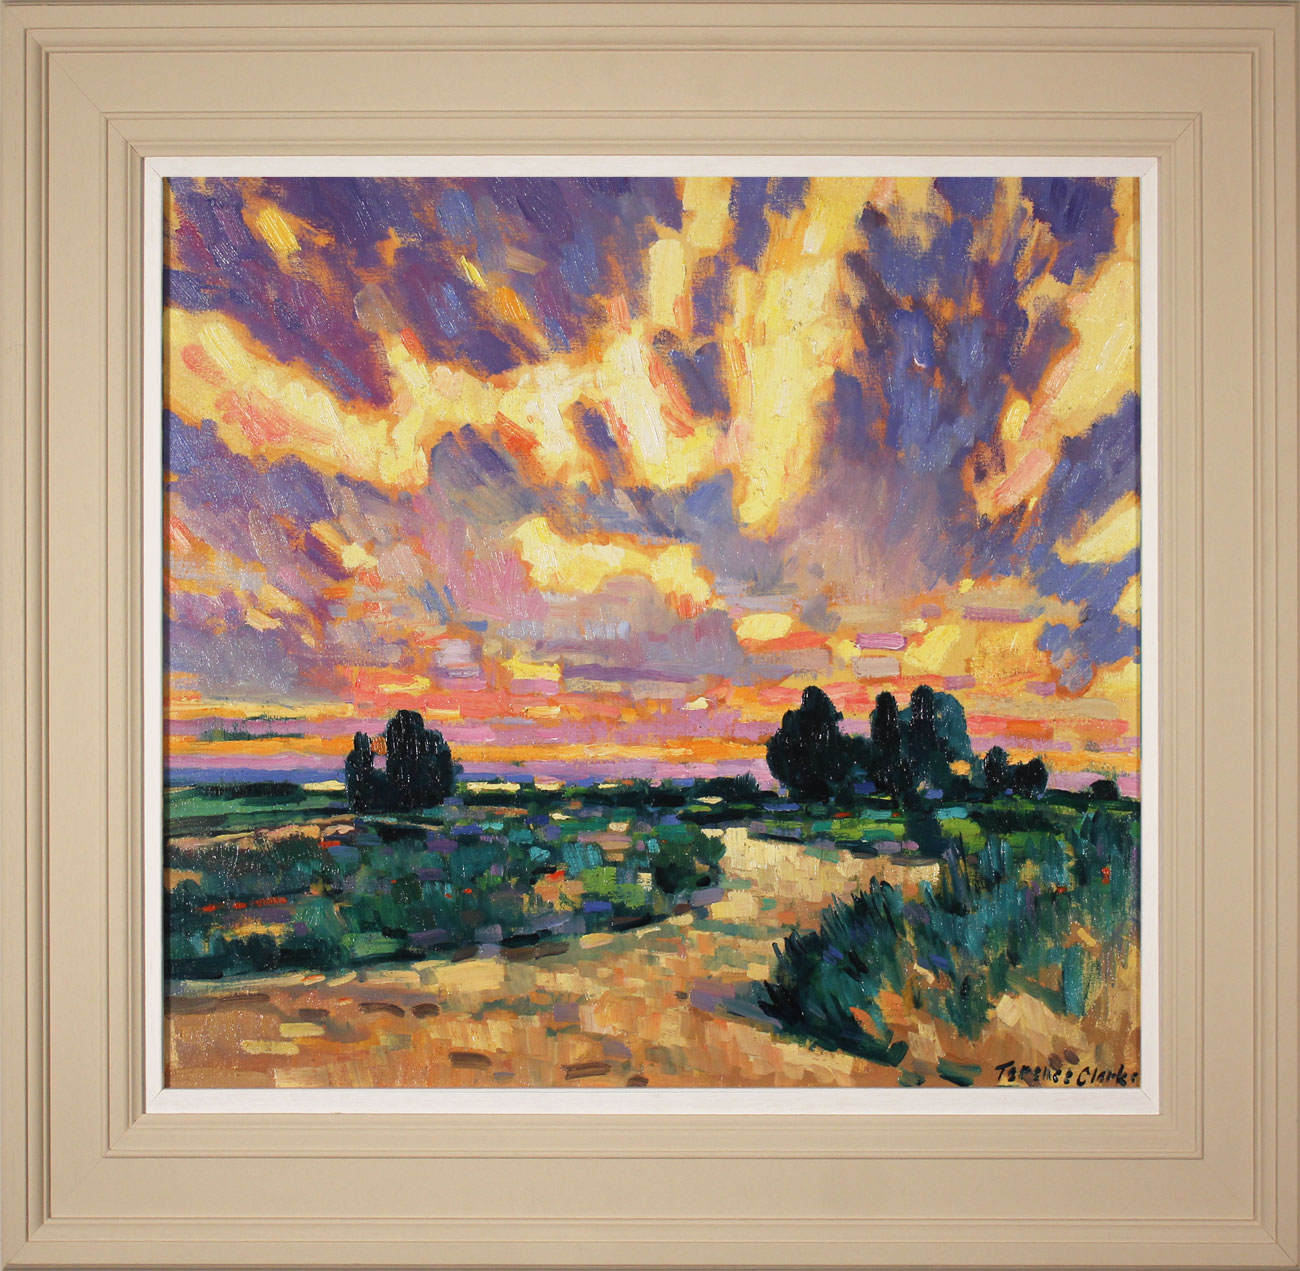 Terence Clarke, Original oil painting on canvas, Delfland Sunset, click to enlarge